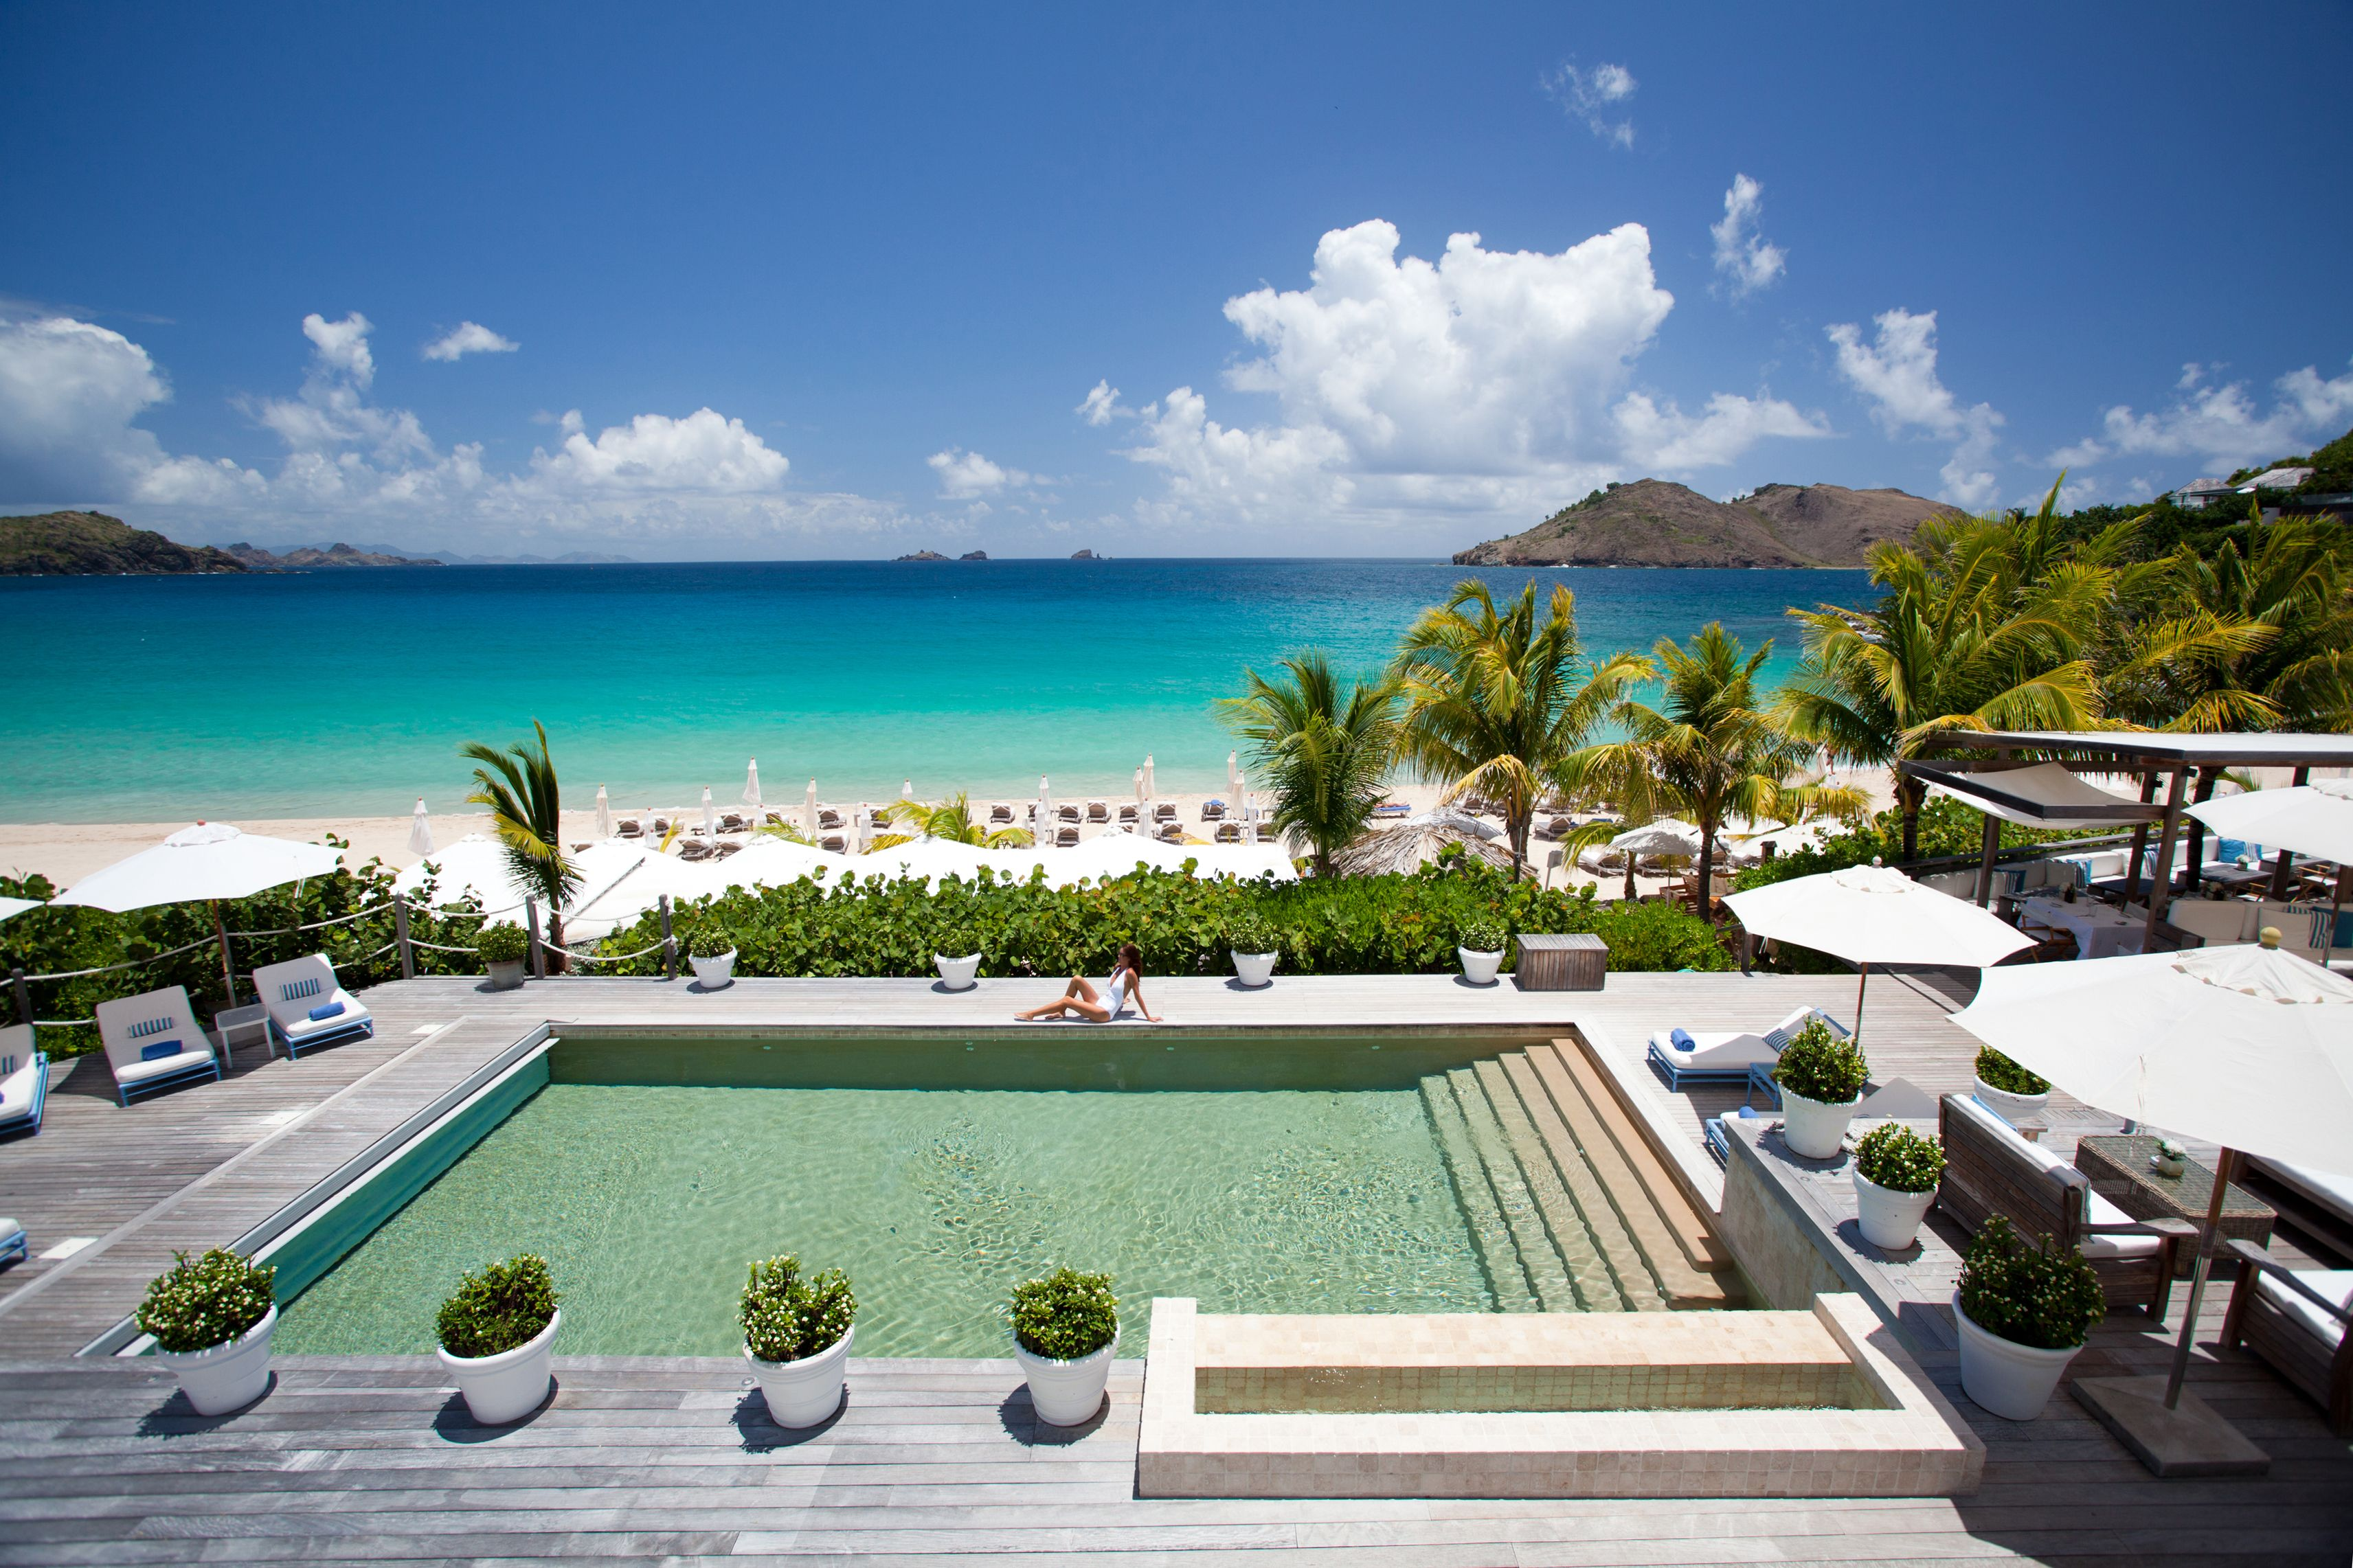 the pool the beach @ isle de france hotel in st barths | places